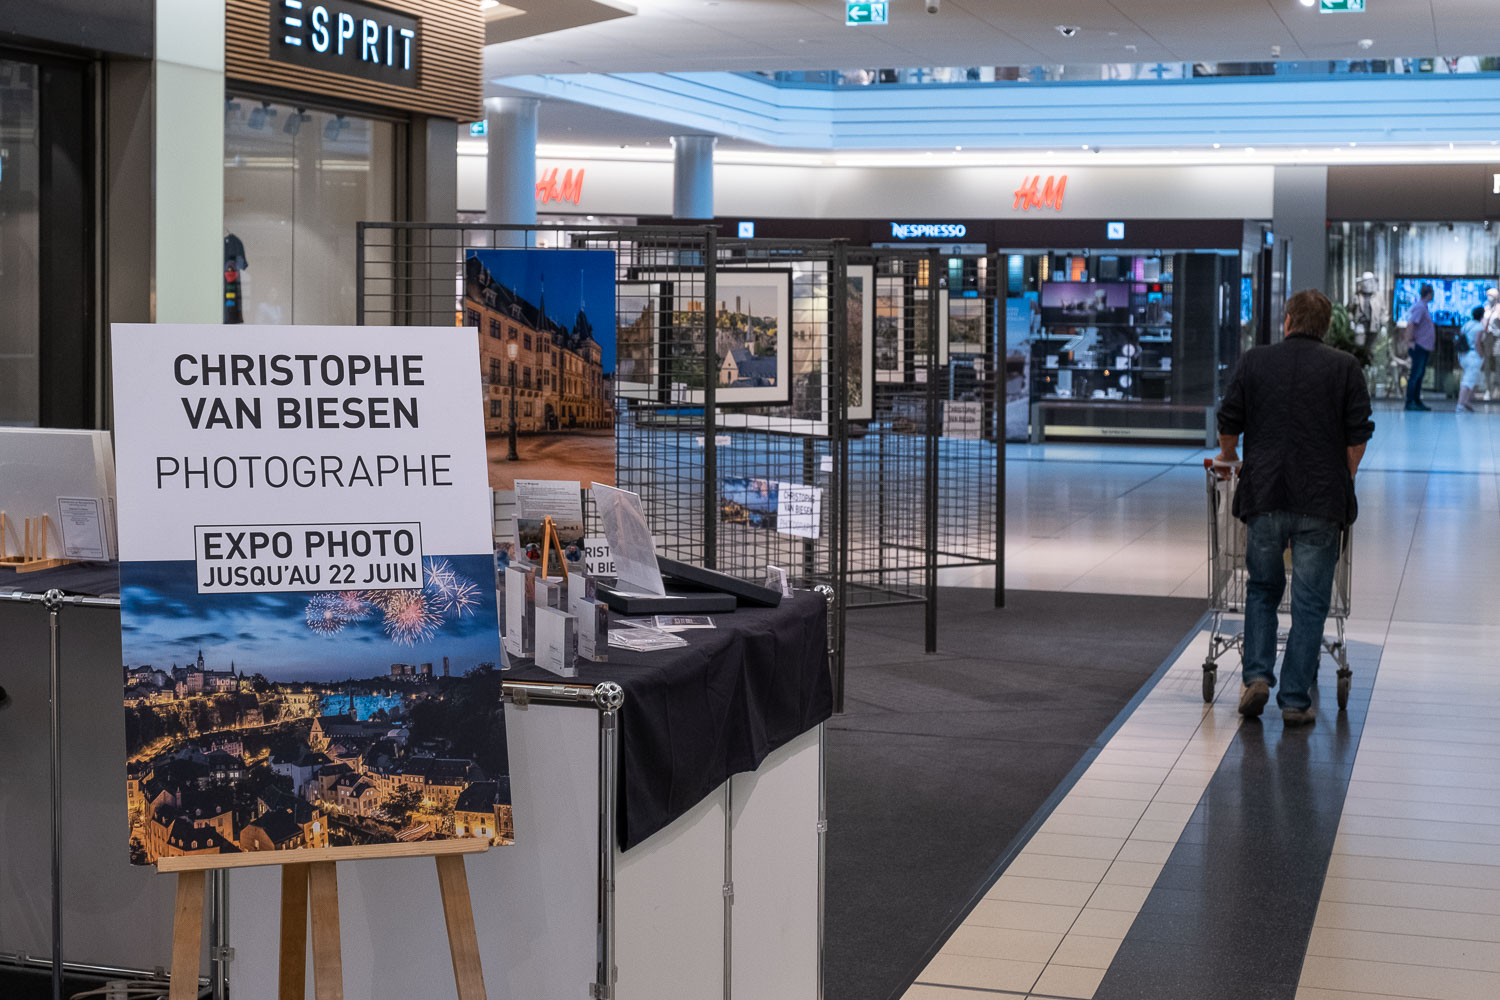 Celebrate Luxembourg - National Day Photography Exhibition - Belle Etoile Shopping Center - Exhibition Belle Etoile - Photography by Christophe Van Biesen - Luxembourg Landscape and Travel Photographer.jpg